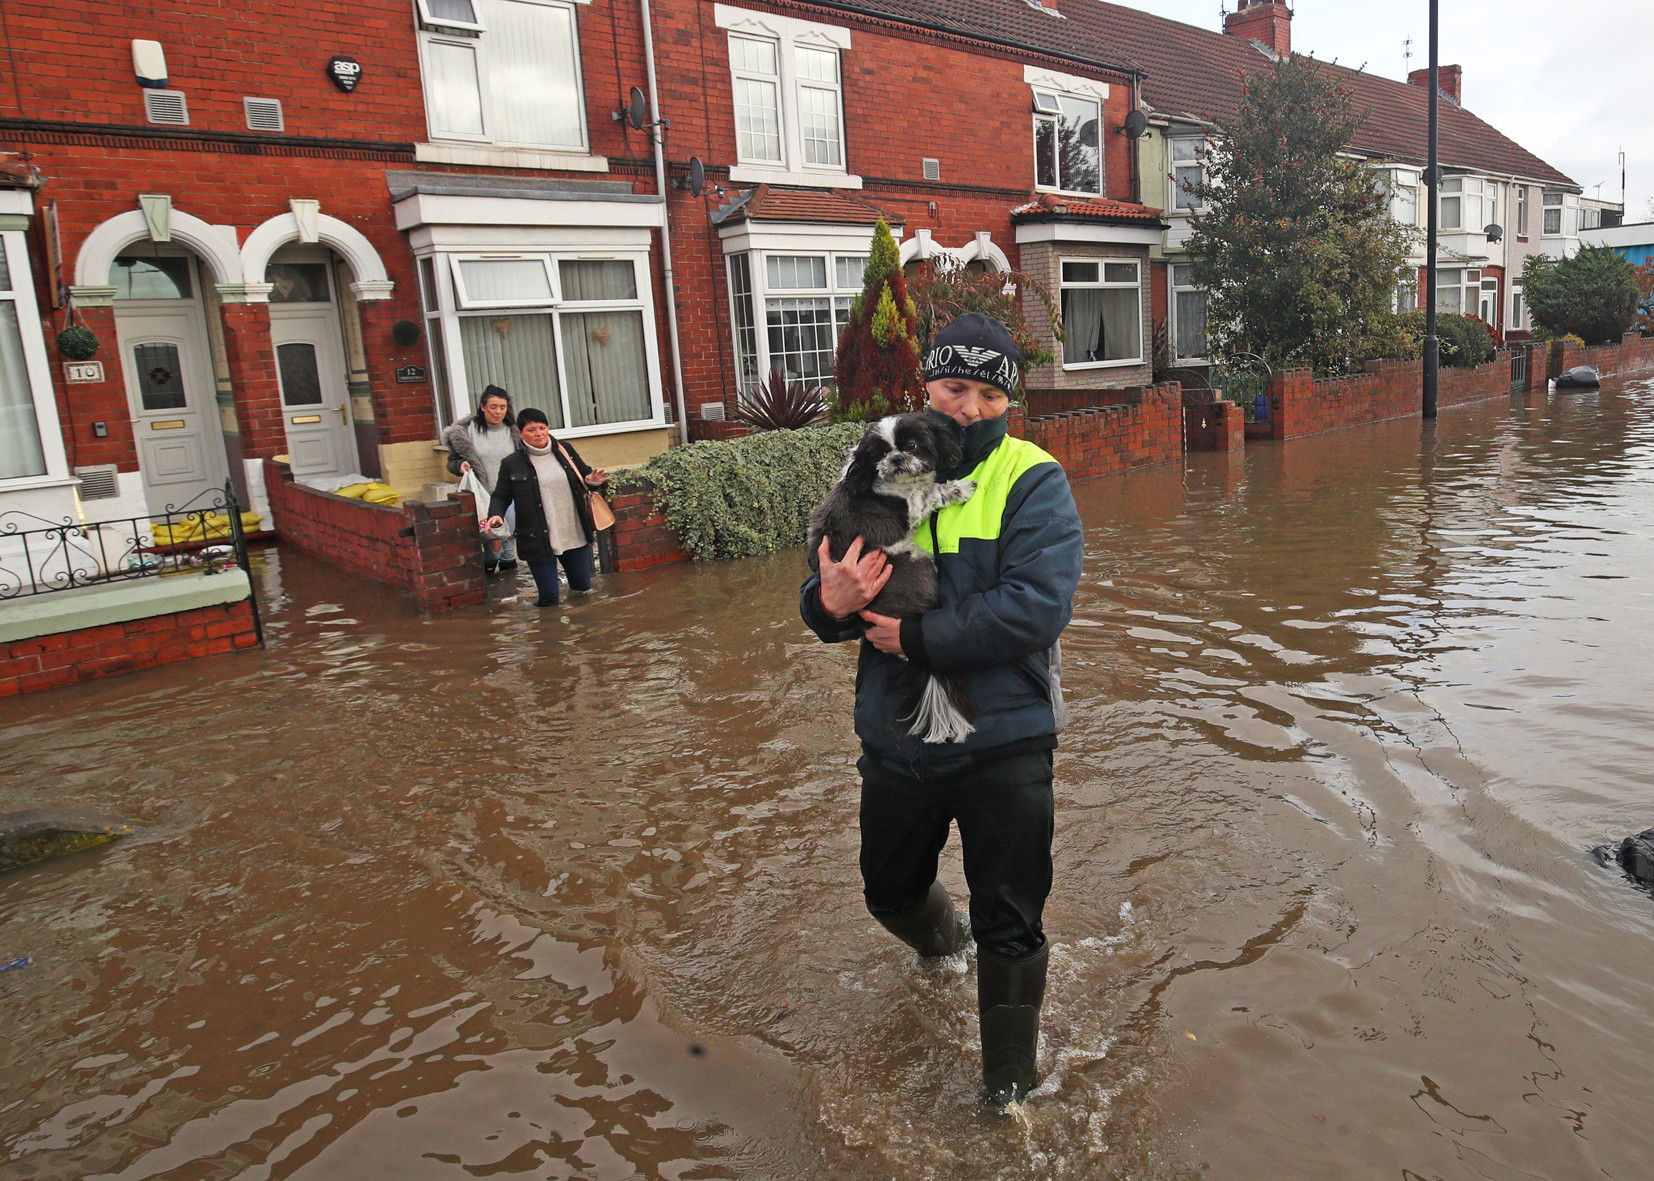 A dog is carried to safety after residents evacuate their homes in Doncaster